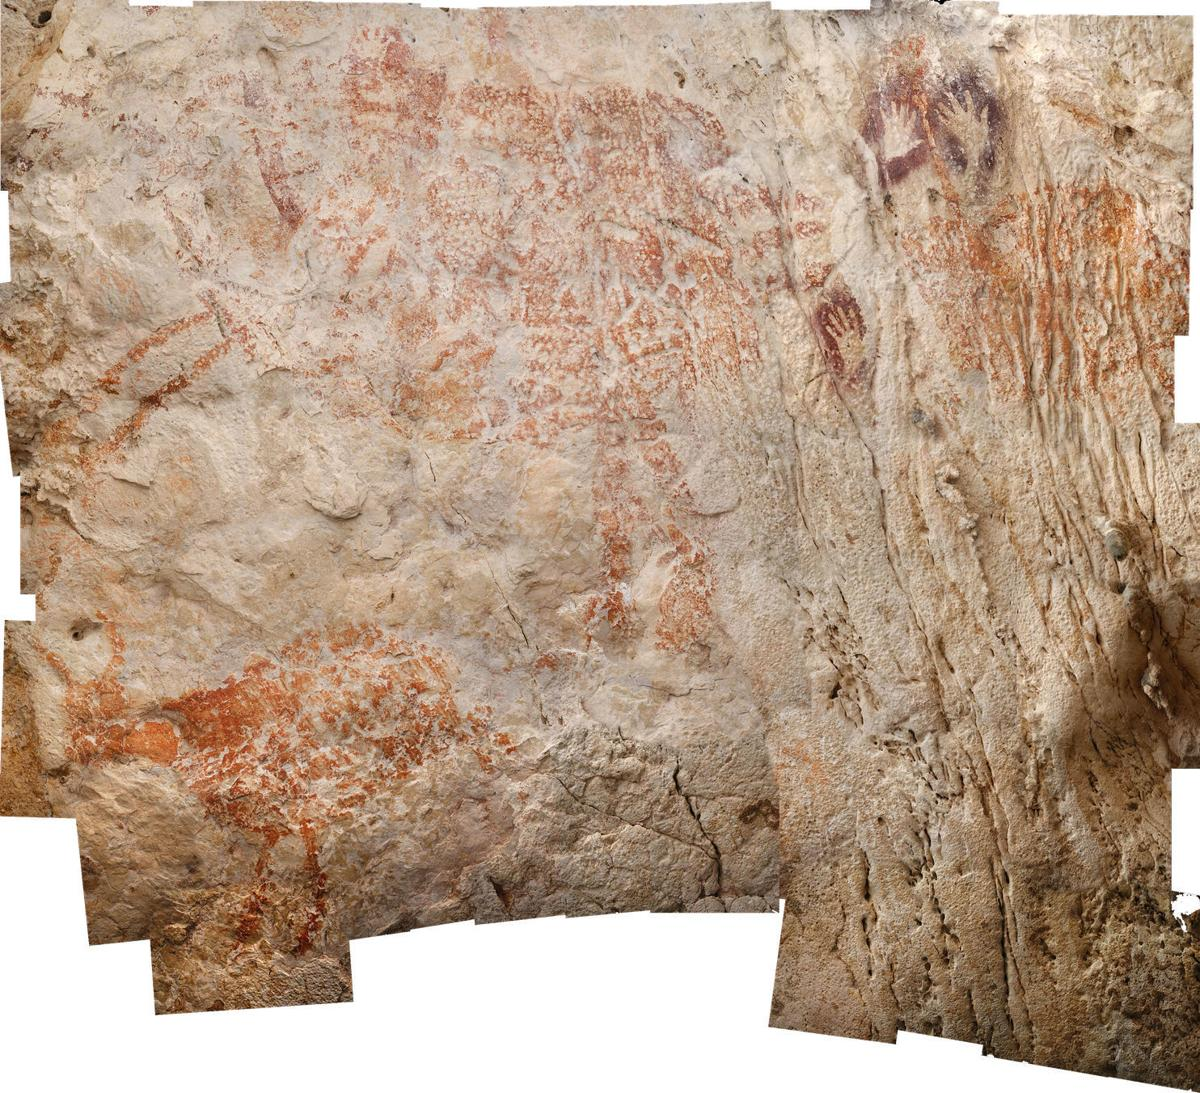 The earliest evidence of human art is this cave painting of a cow